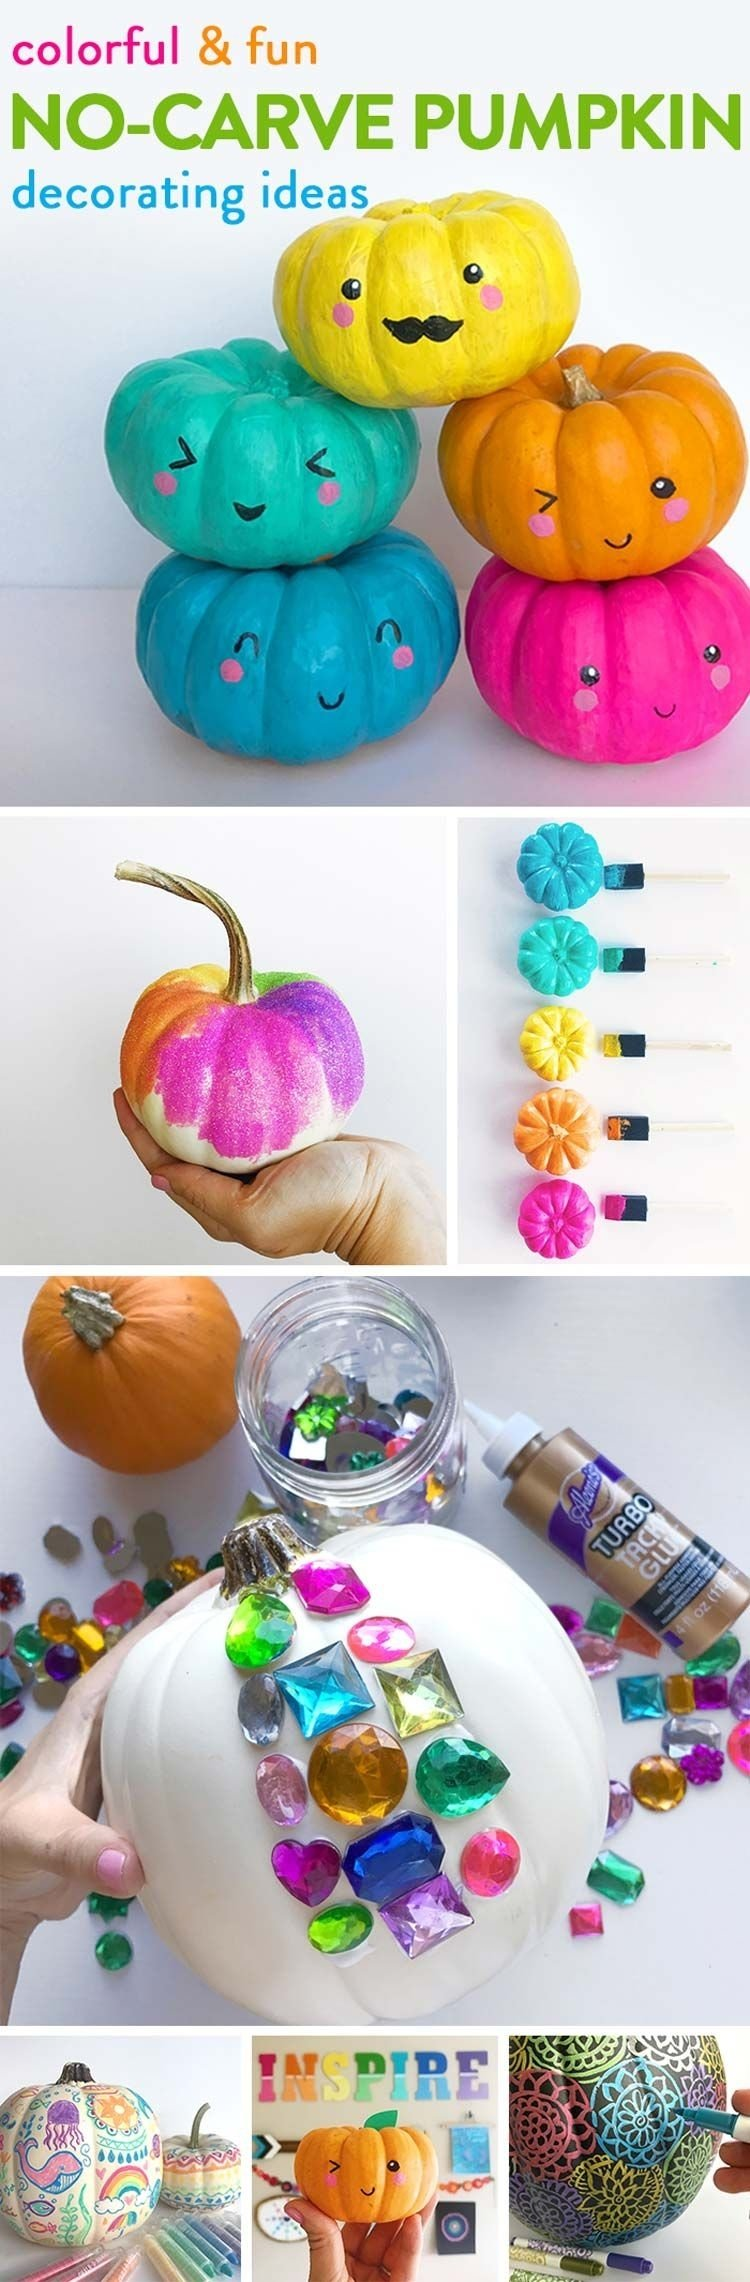 no-carve pumpkin decorating ideas | imagination, bright and canvases